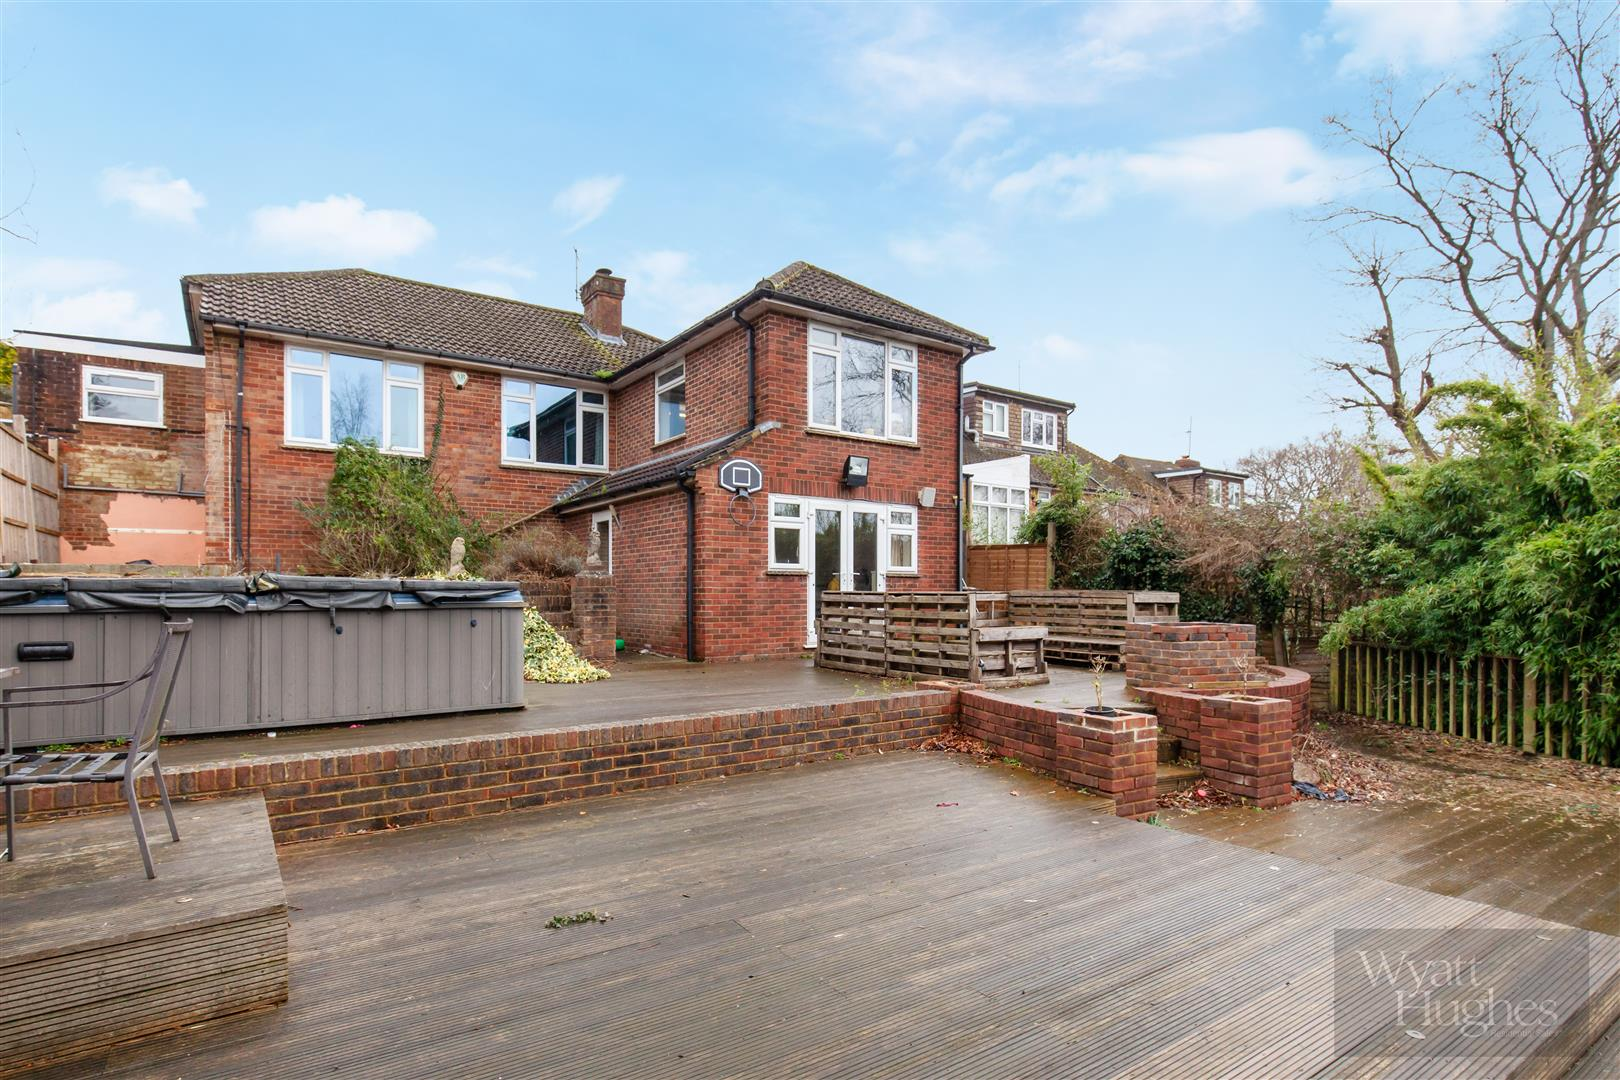 4 bed detached-bungalow for sale in Gorselands, Battle 26